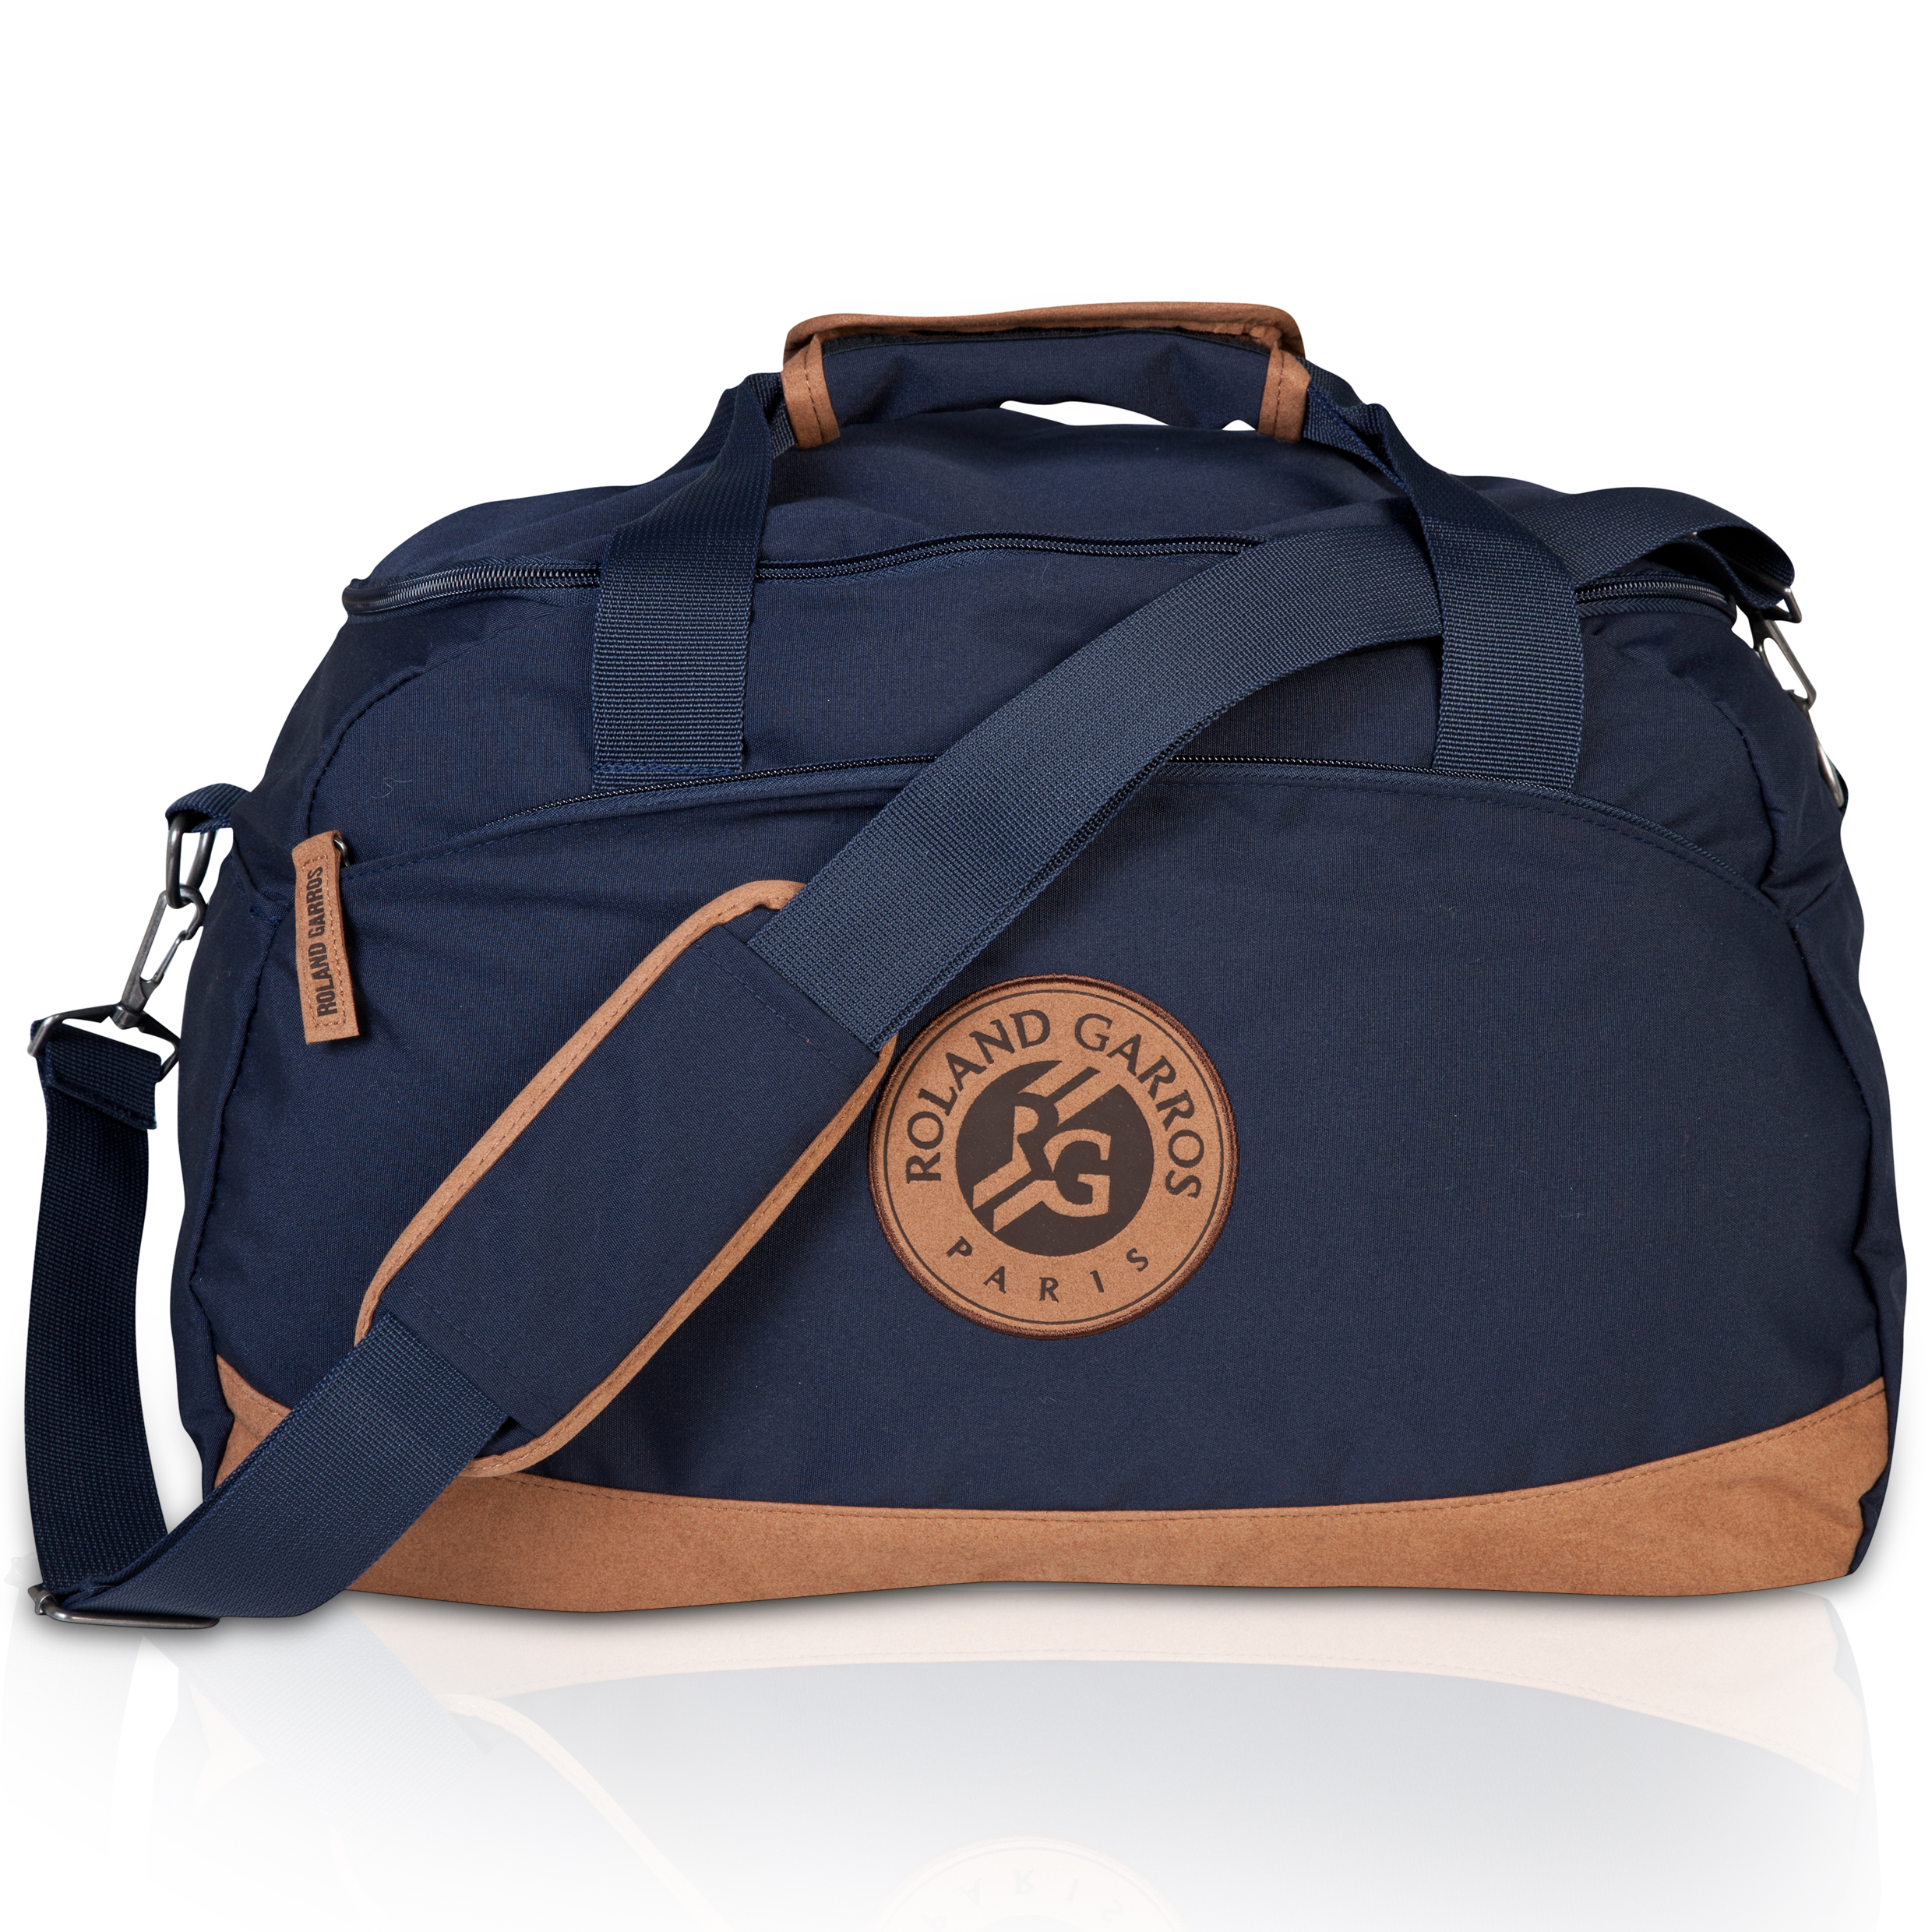 Roland-Garros Iacri Signature Weekend Bag Navy